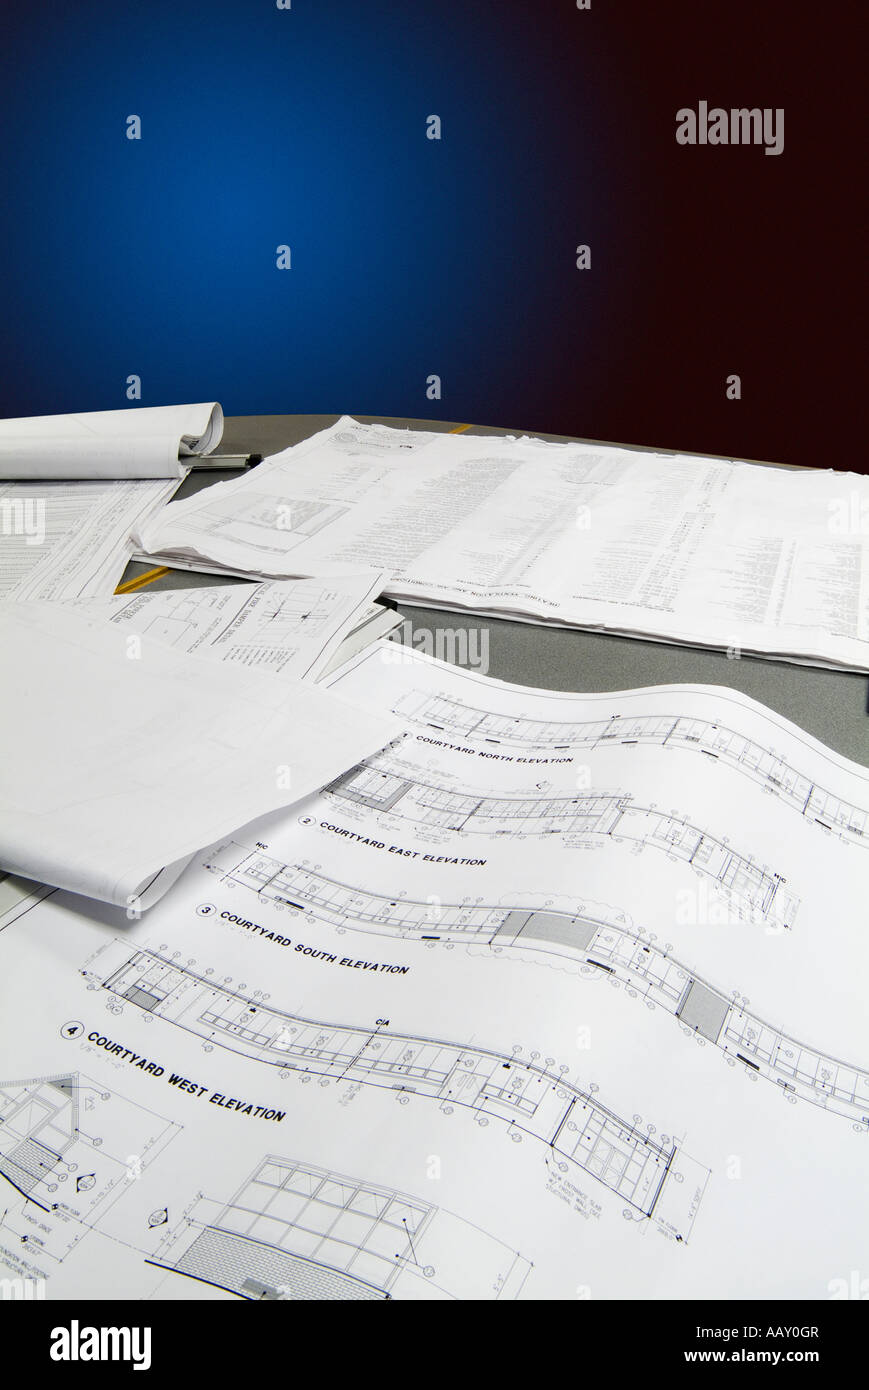 Architectural blueprint drawings of building on table studio still architectural blueprint drawings of building on table studio still life usa malvernweather Gallery